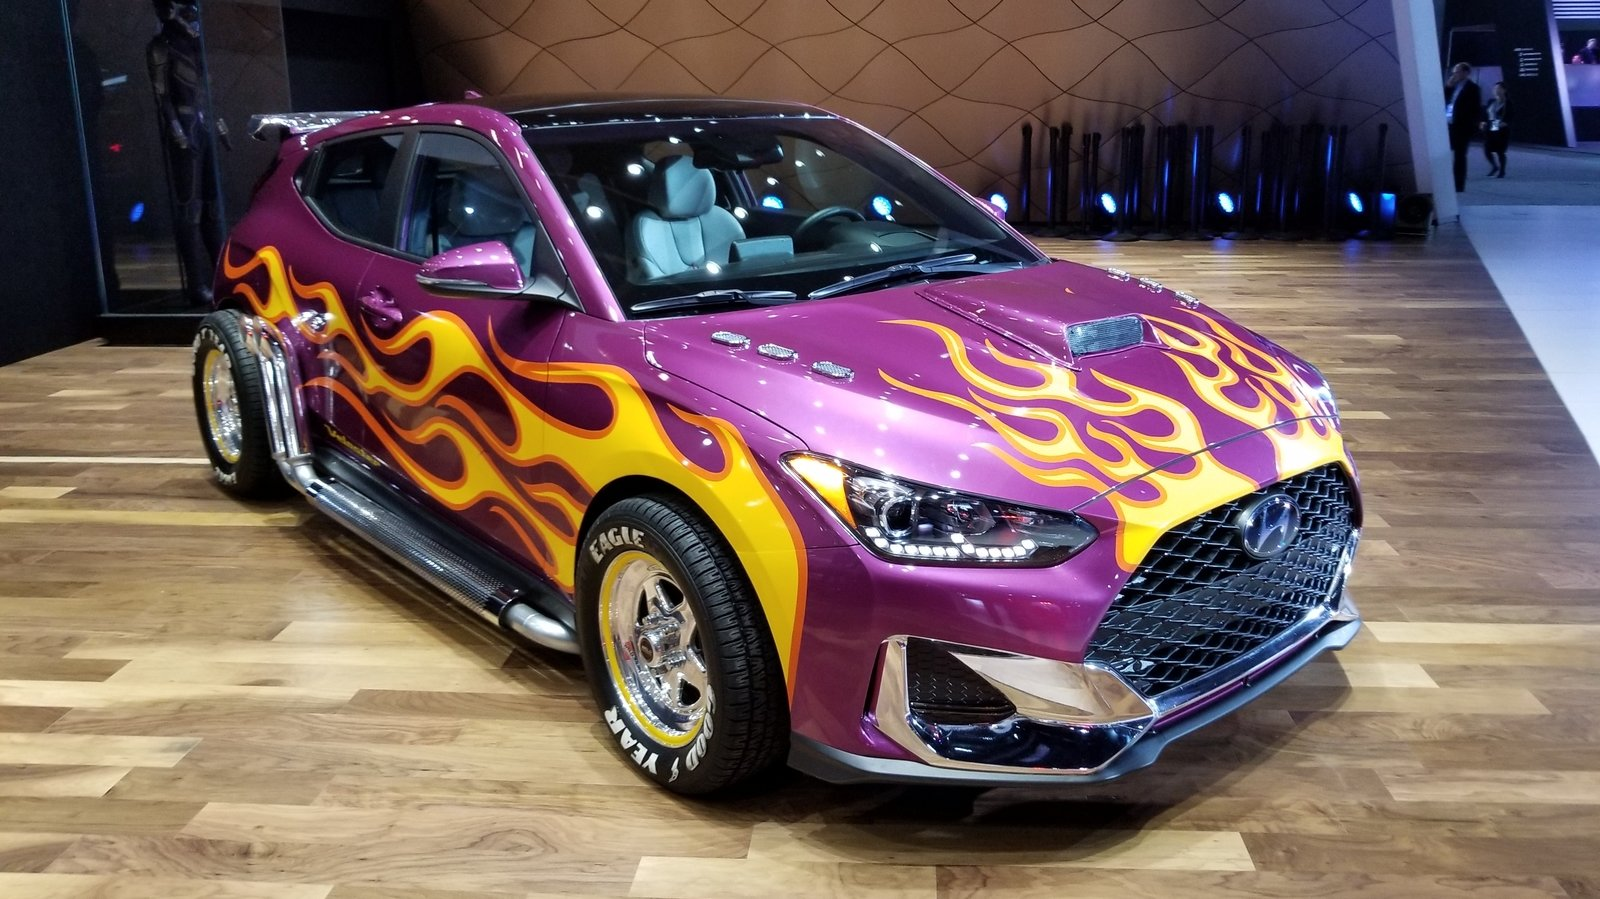 antman and the wasp veloster proves hyundai deserves a